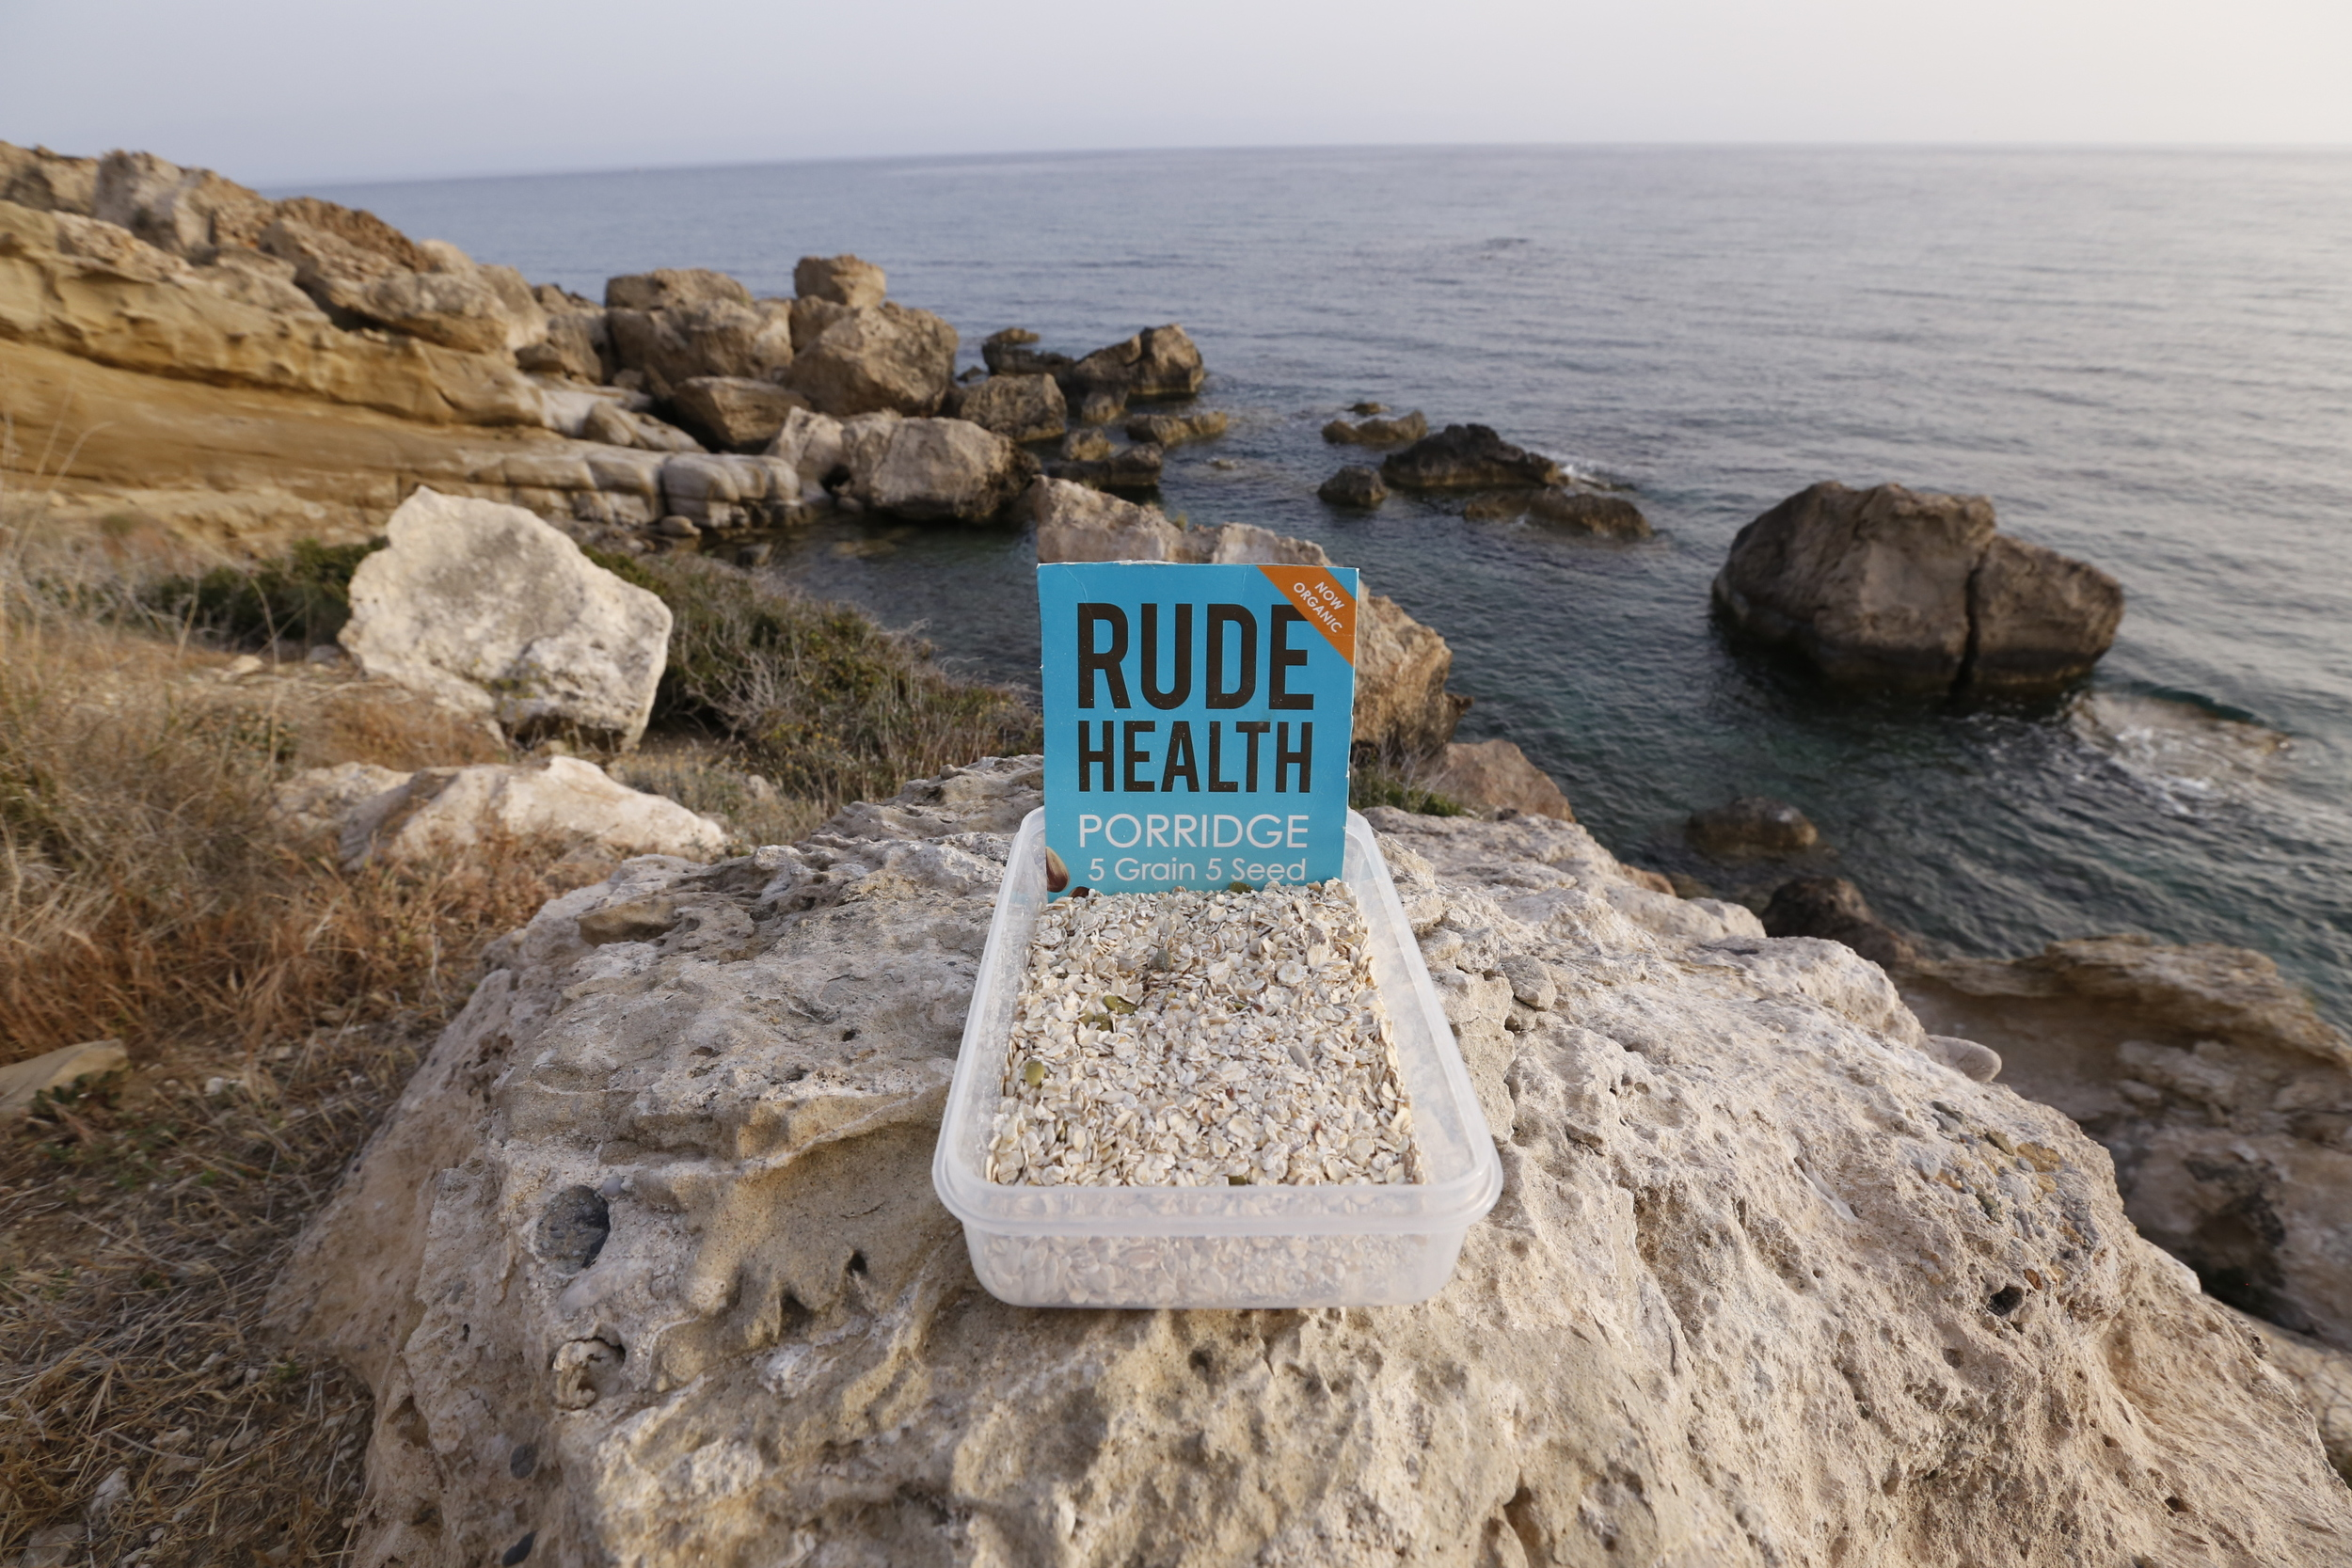 I've worked with   Rude Health   for a few years now and their products have always been excellent. Keeping fueled on the bike is absolutely imperative...what better way to start each day than a huge bowl of porridge?! This particular product has tonnes of added protein thanks to its five grains & seeds.